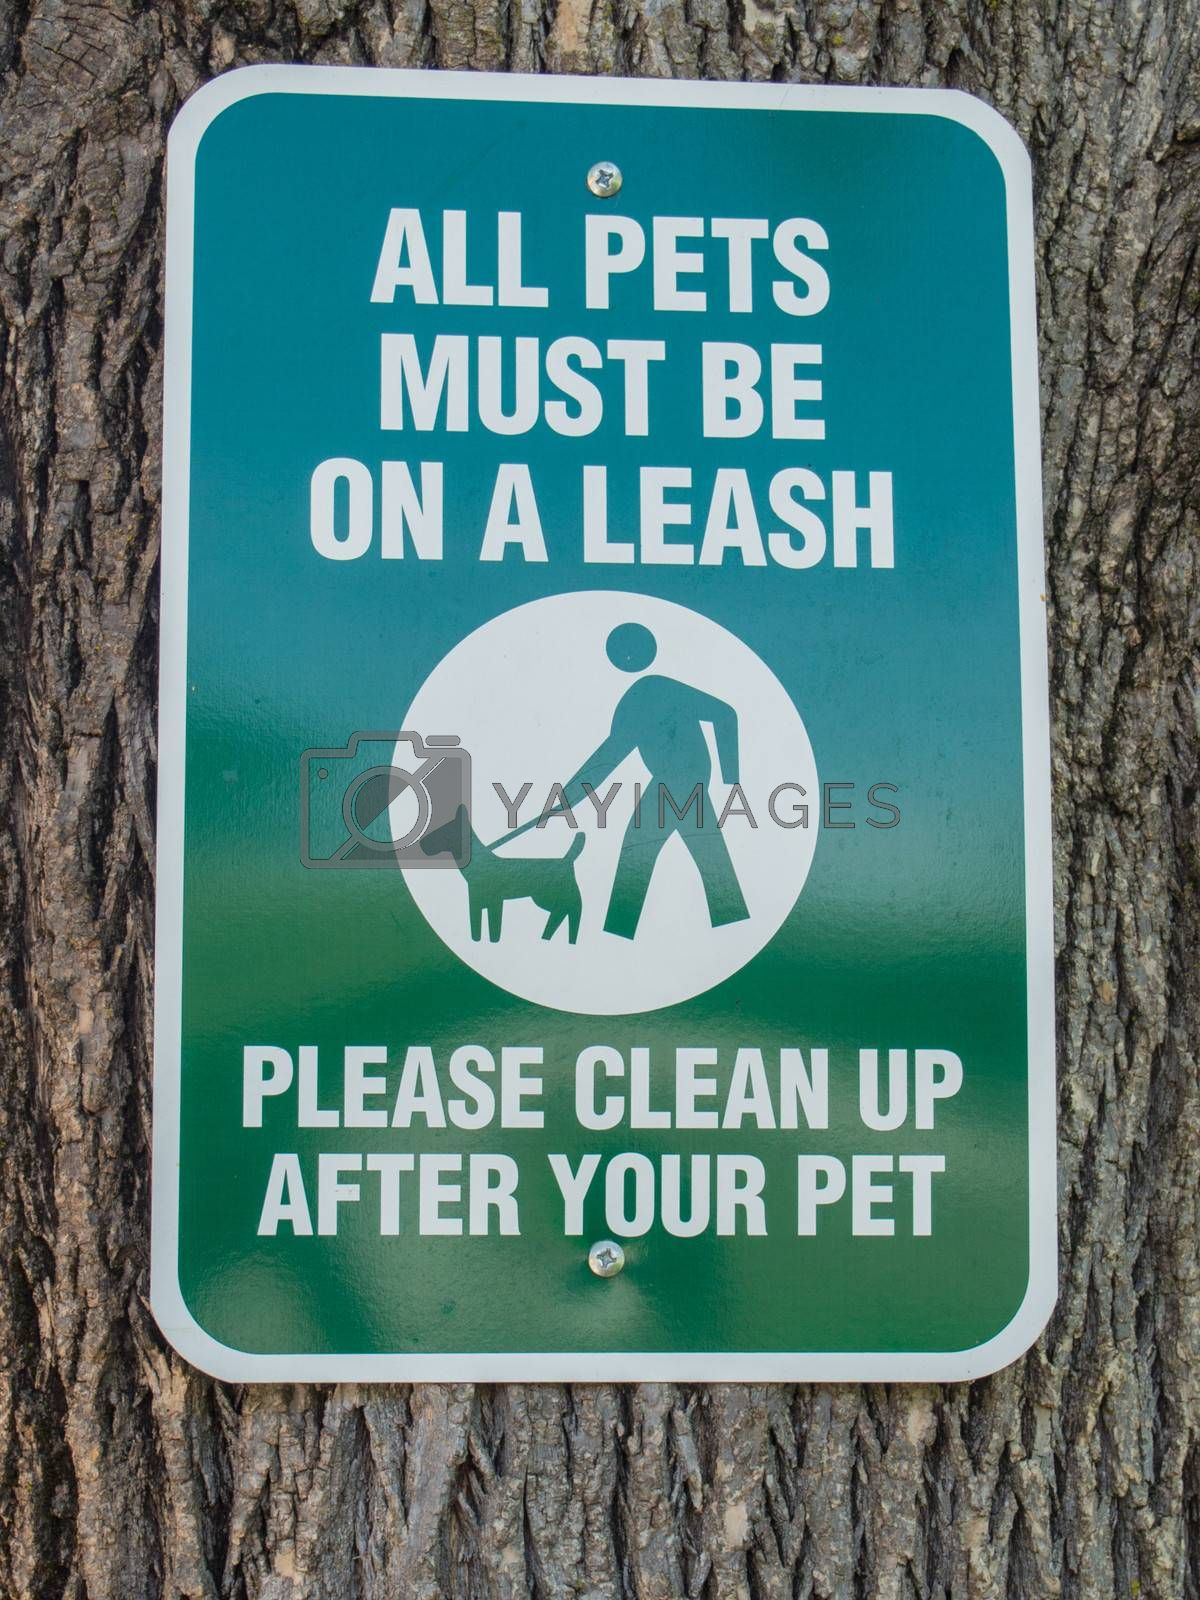 All Pets Must Be On A Leash Signs Aware Owners Of Pet Restrictions